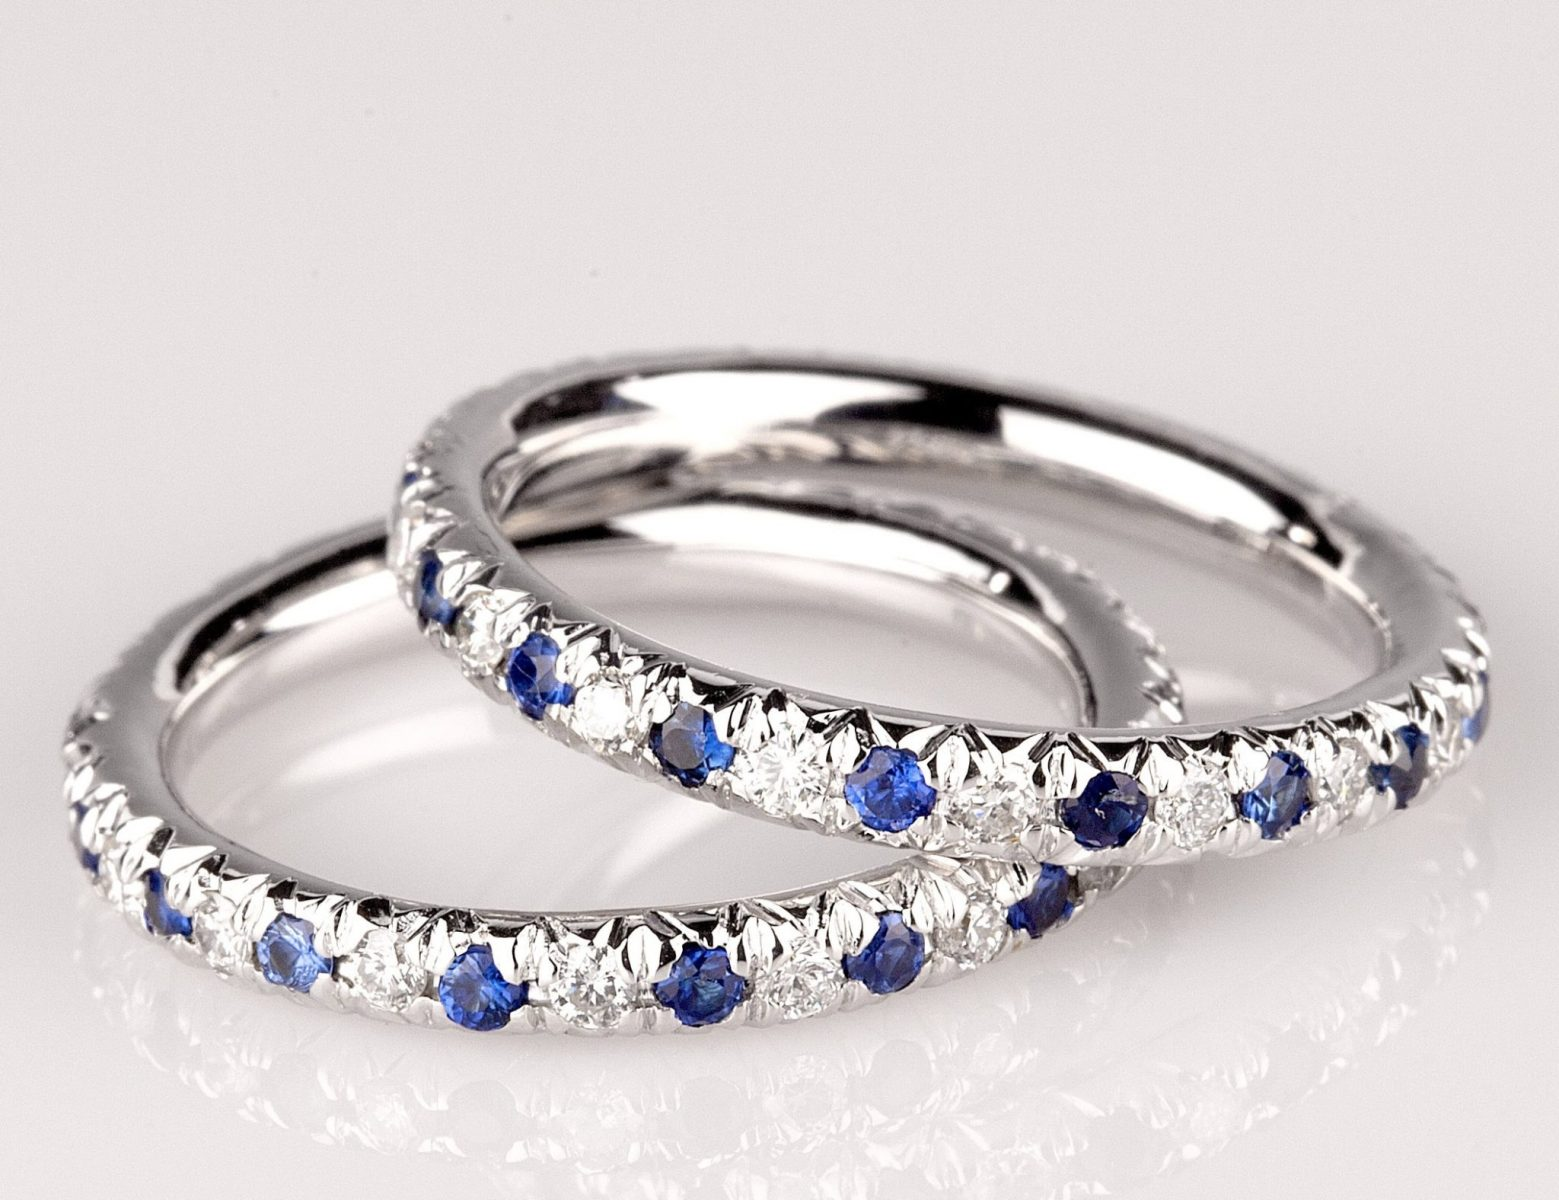 bands gold jewelry color stone stackables wedding band bridal sapphire eternity white